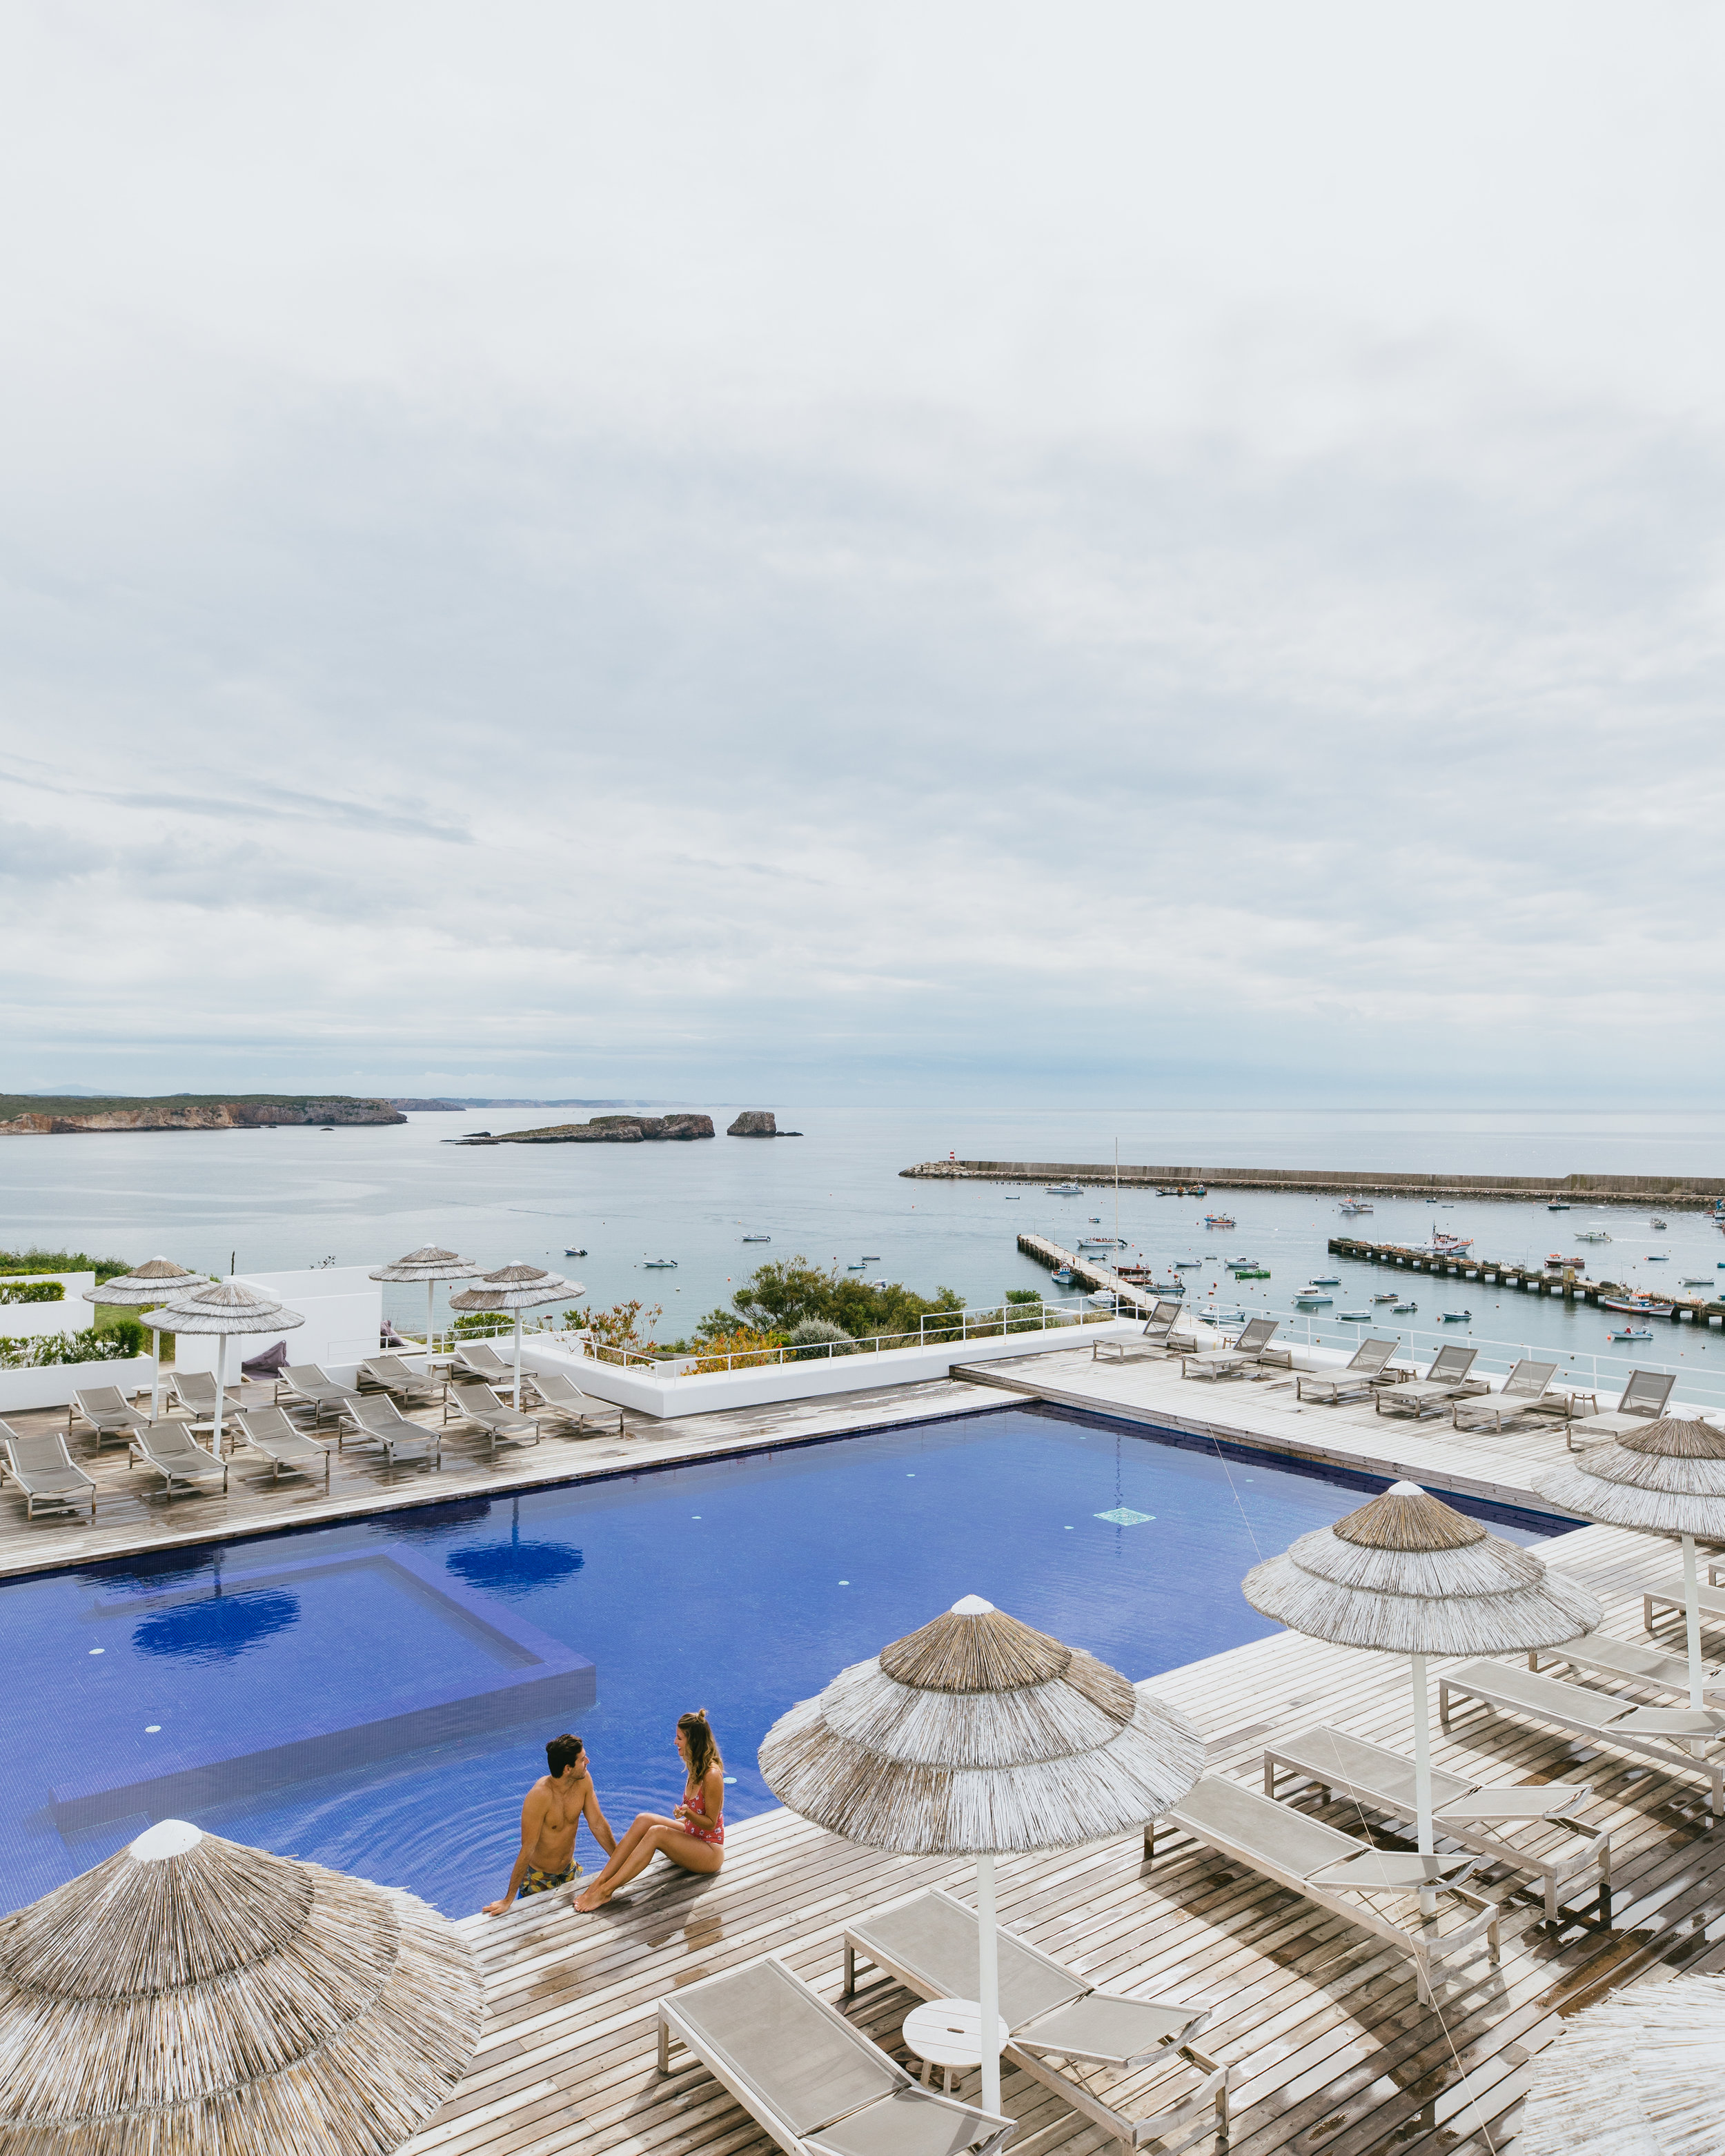 where to stay in sagres, portugal memmo baleirra